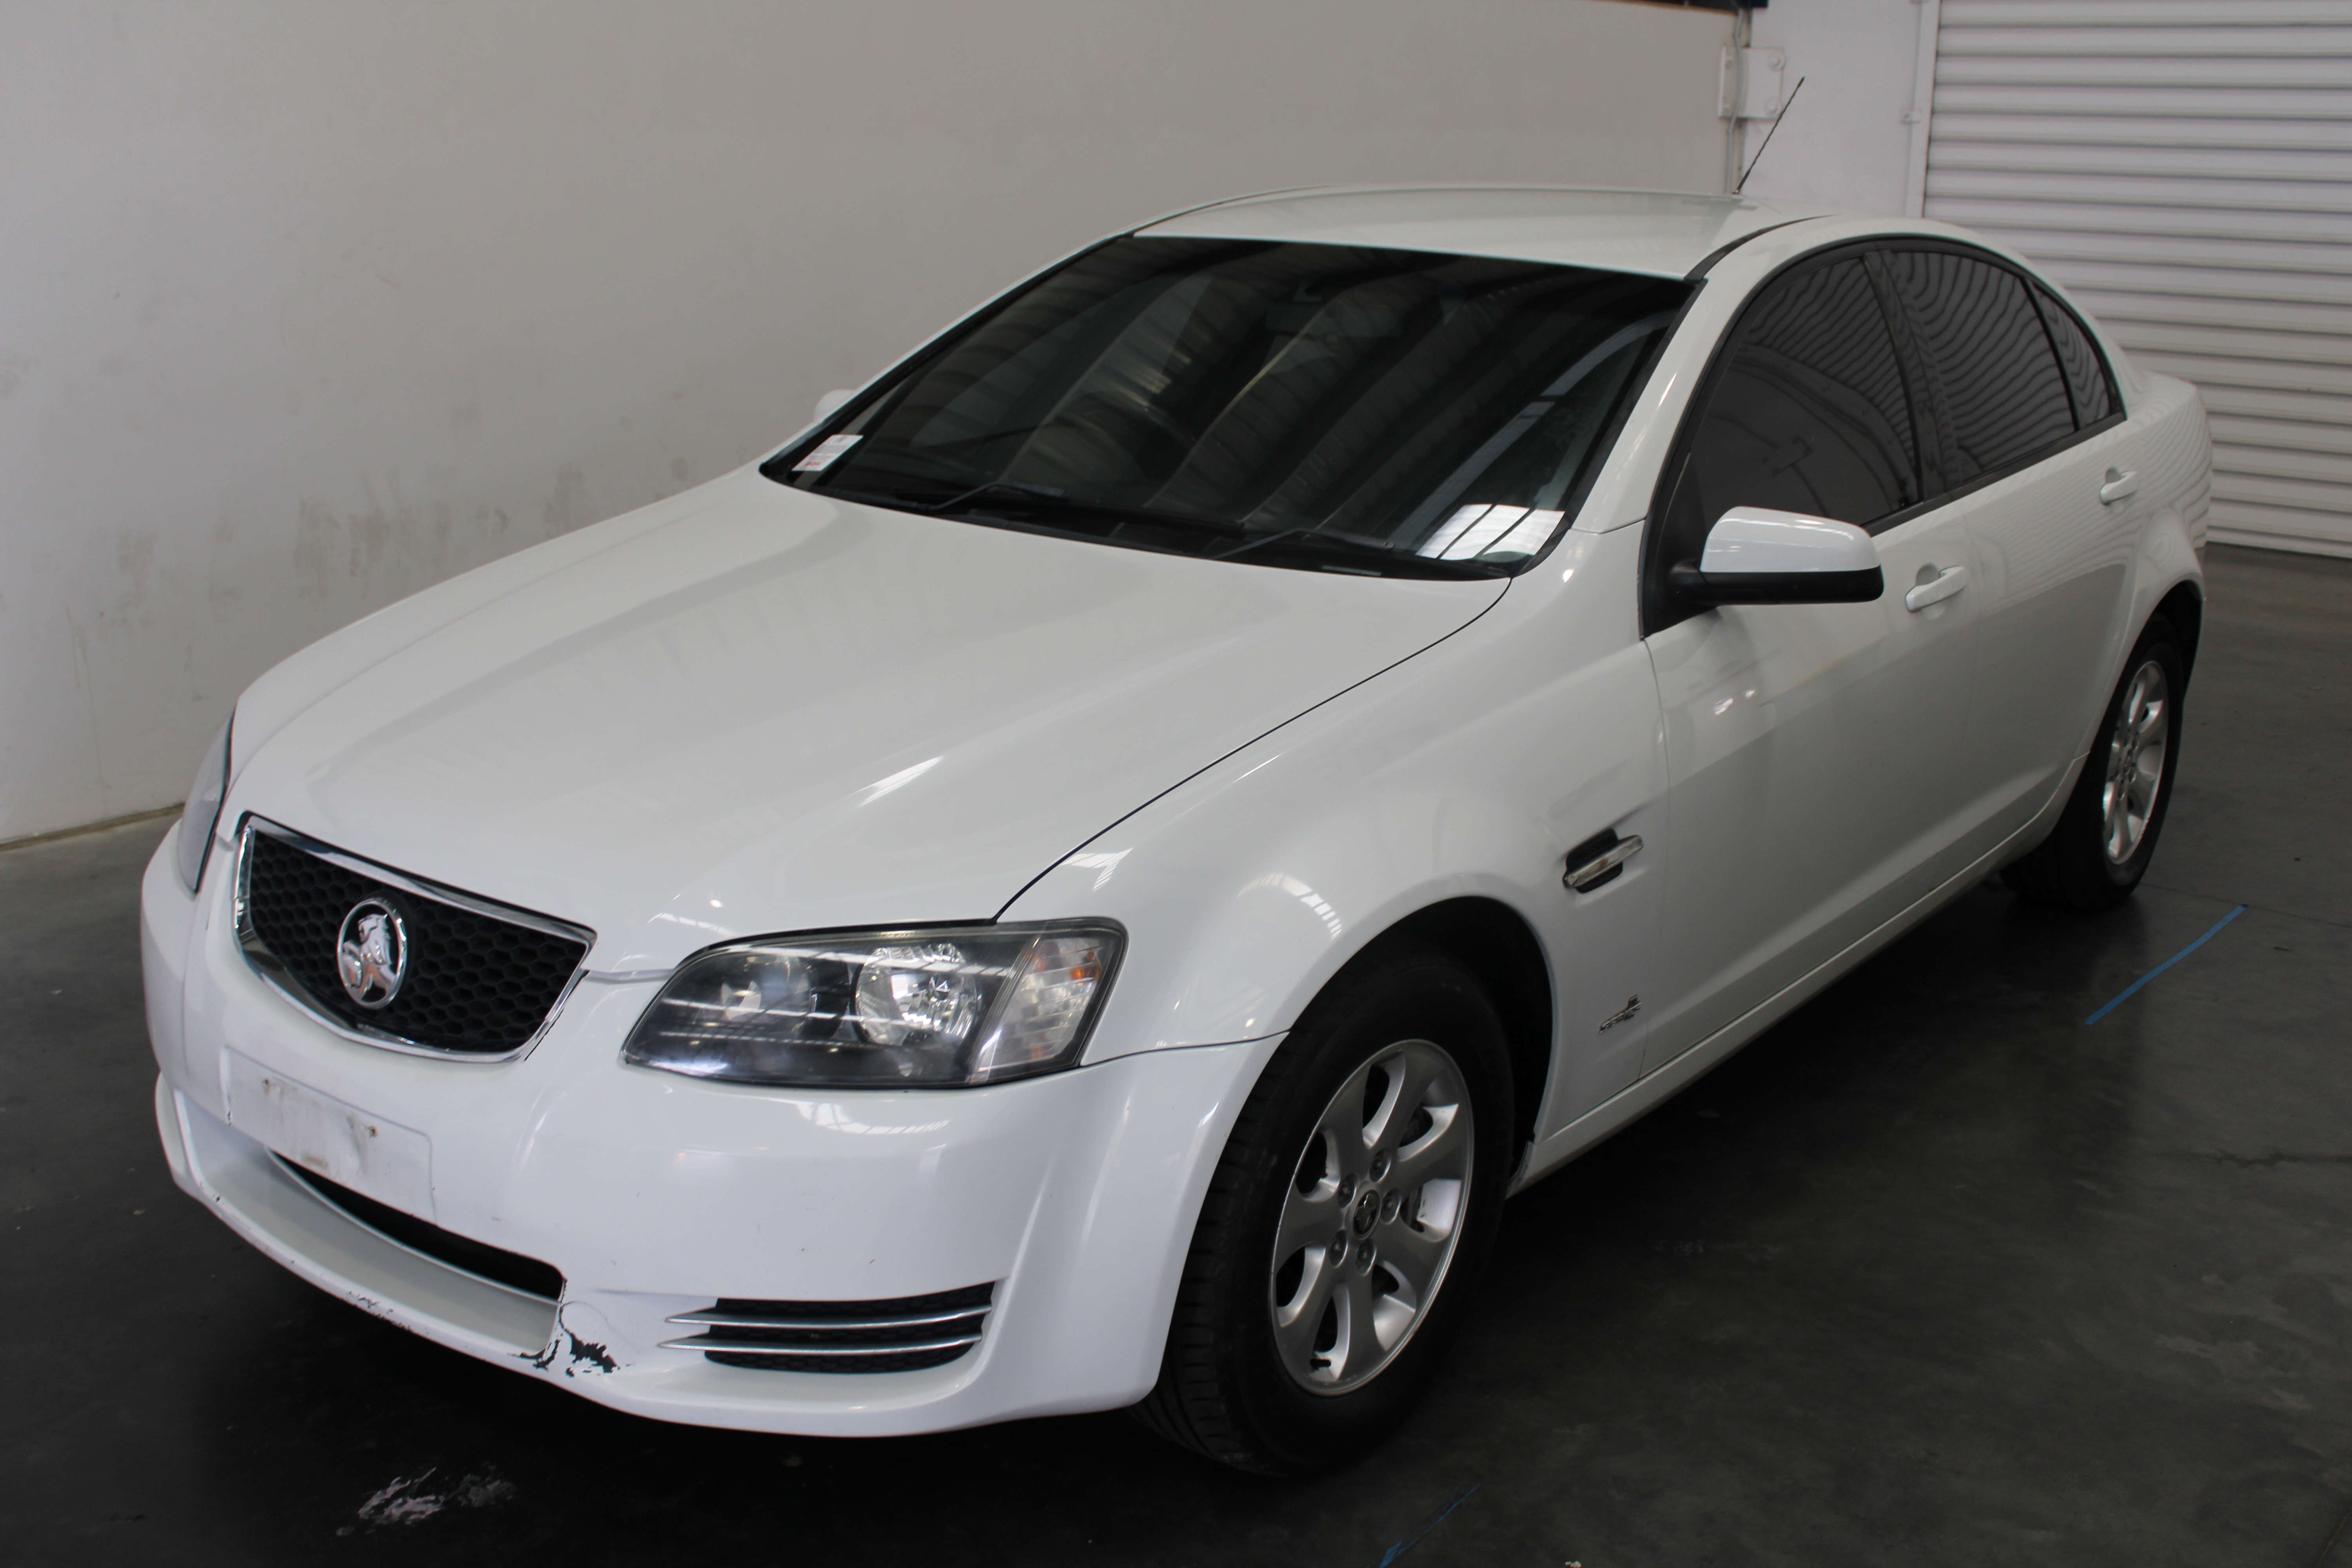 2011 Holden Commodore Omega VE Automatic Sedan